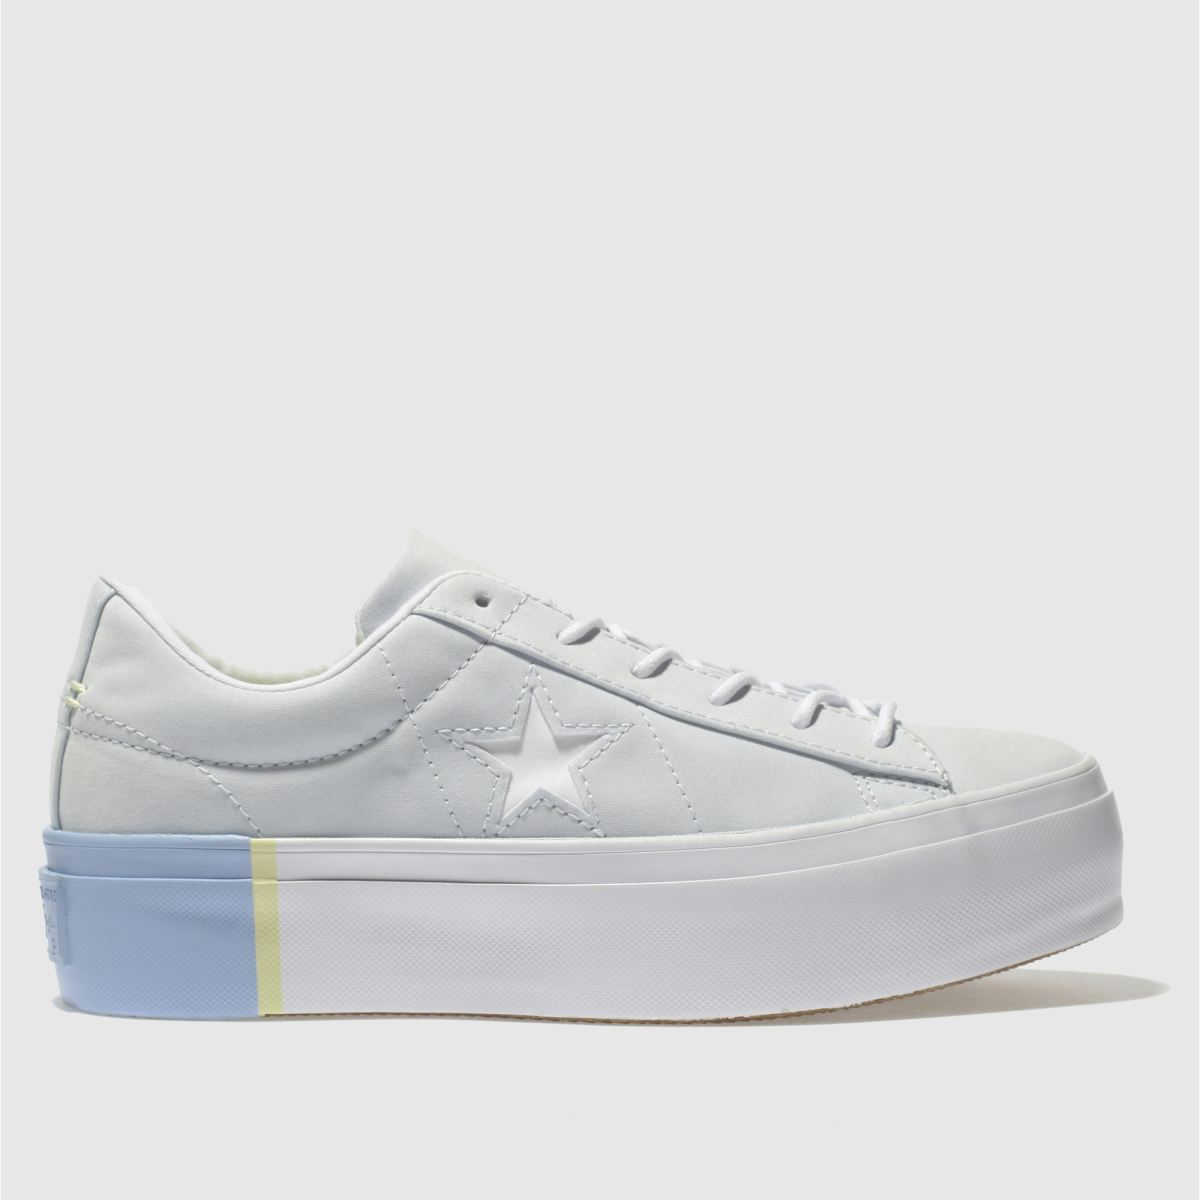 Converse Pale Blue One Star Platform Ox Trainers